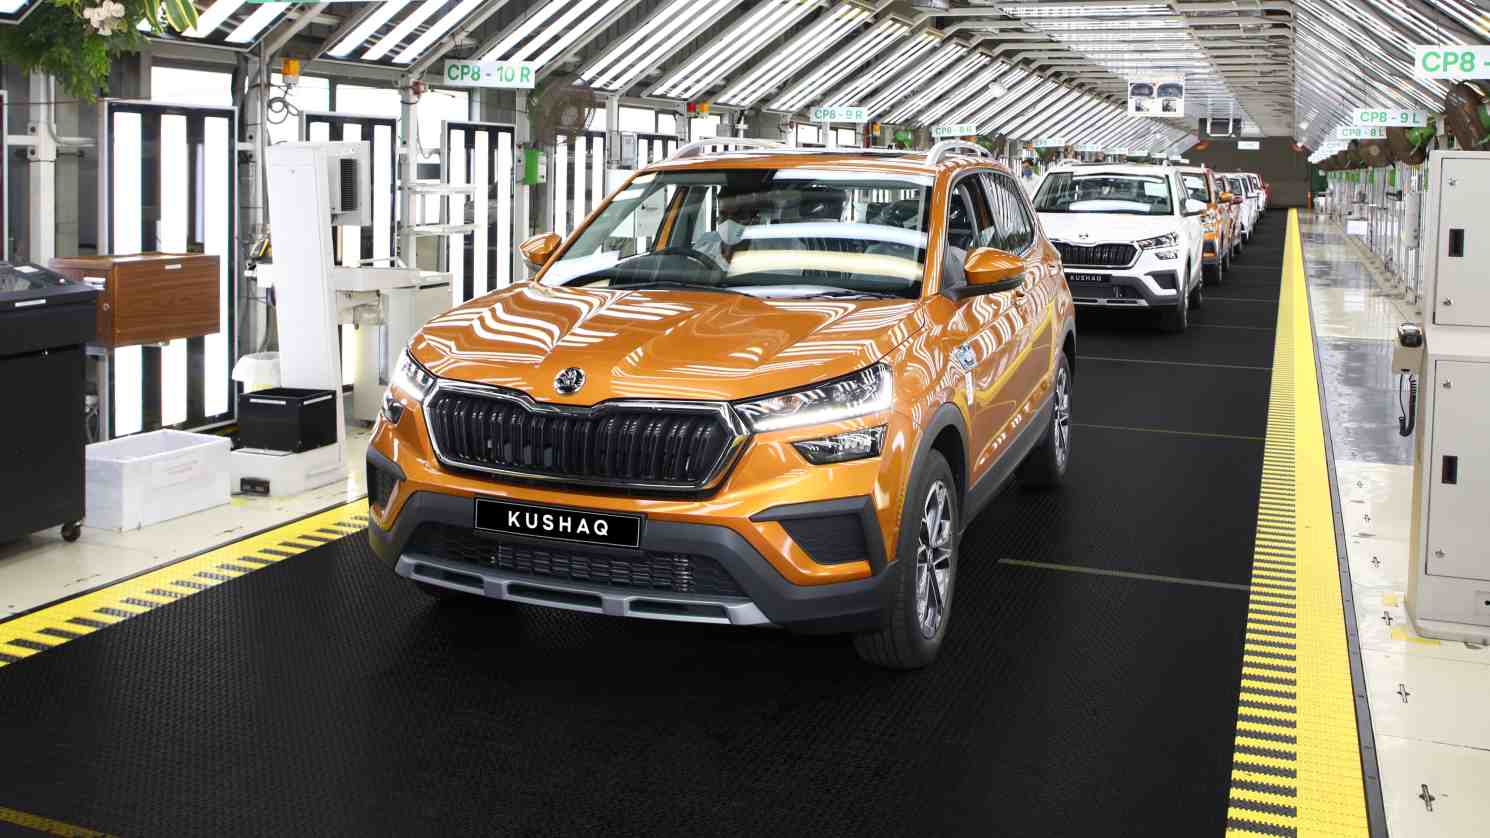 The Skoda Kushaq is set to be launched towards the end of June. Image: Skoda